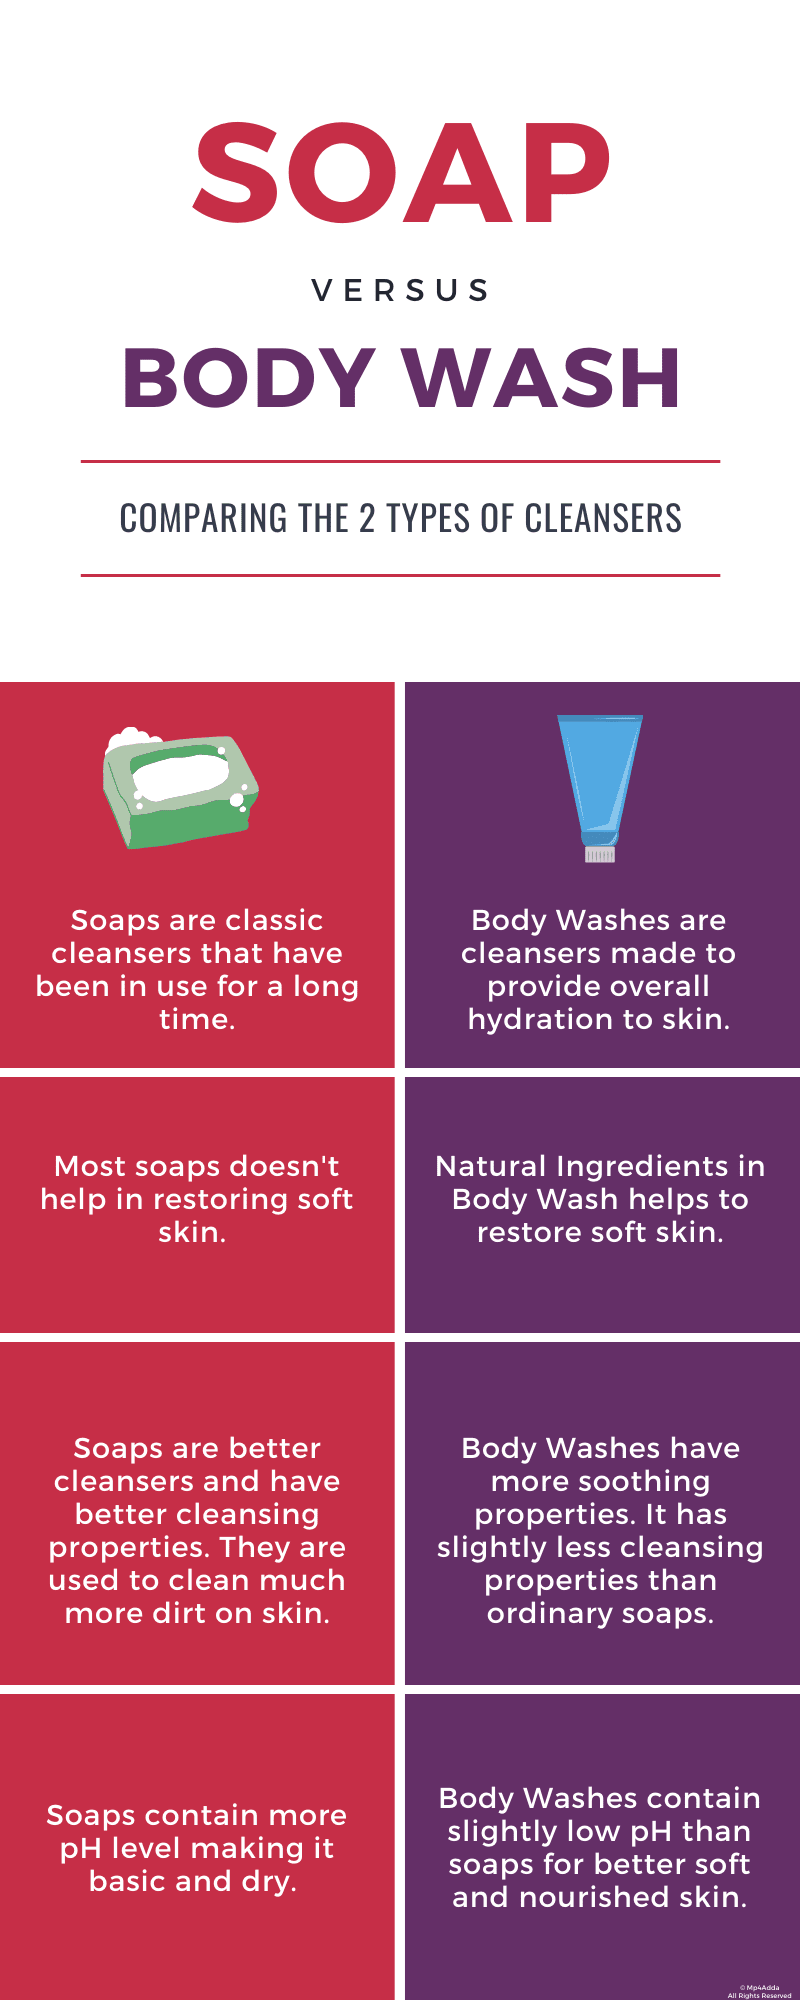 Soap vs Body Wash Infographic